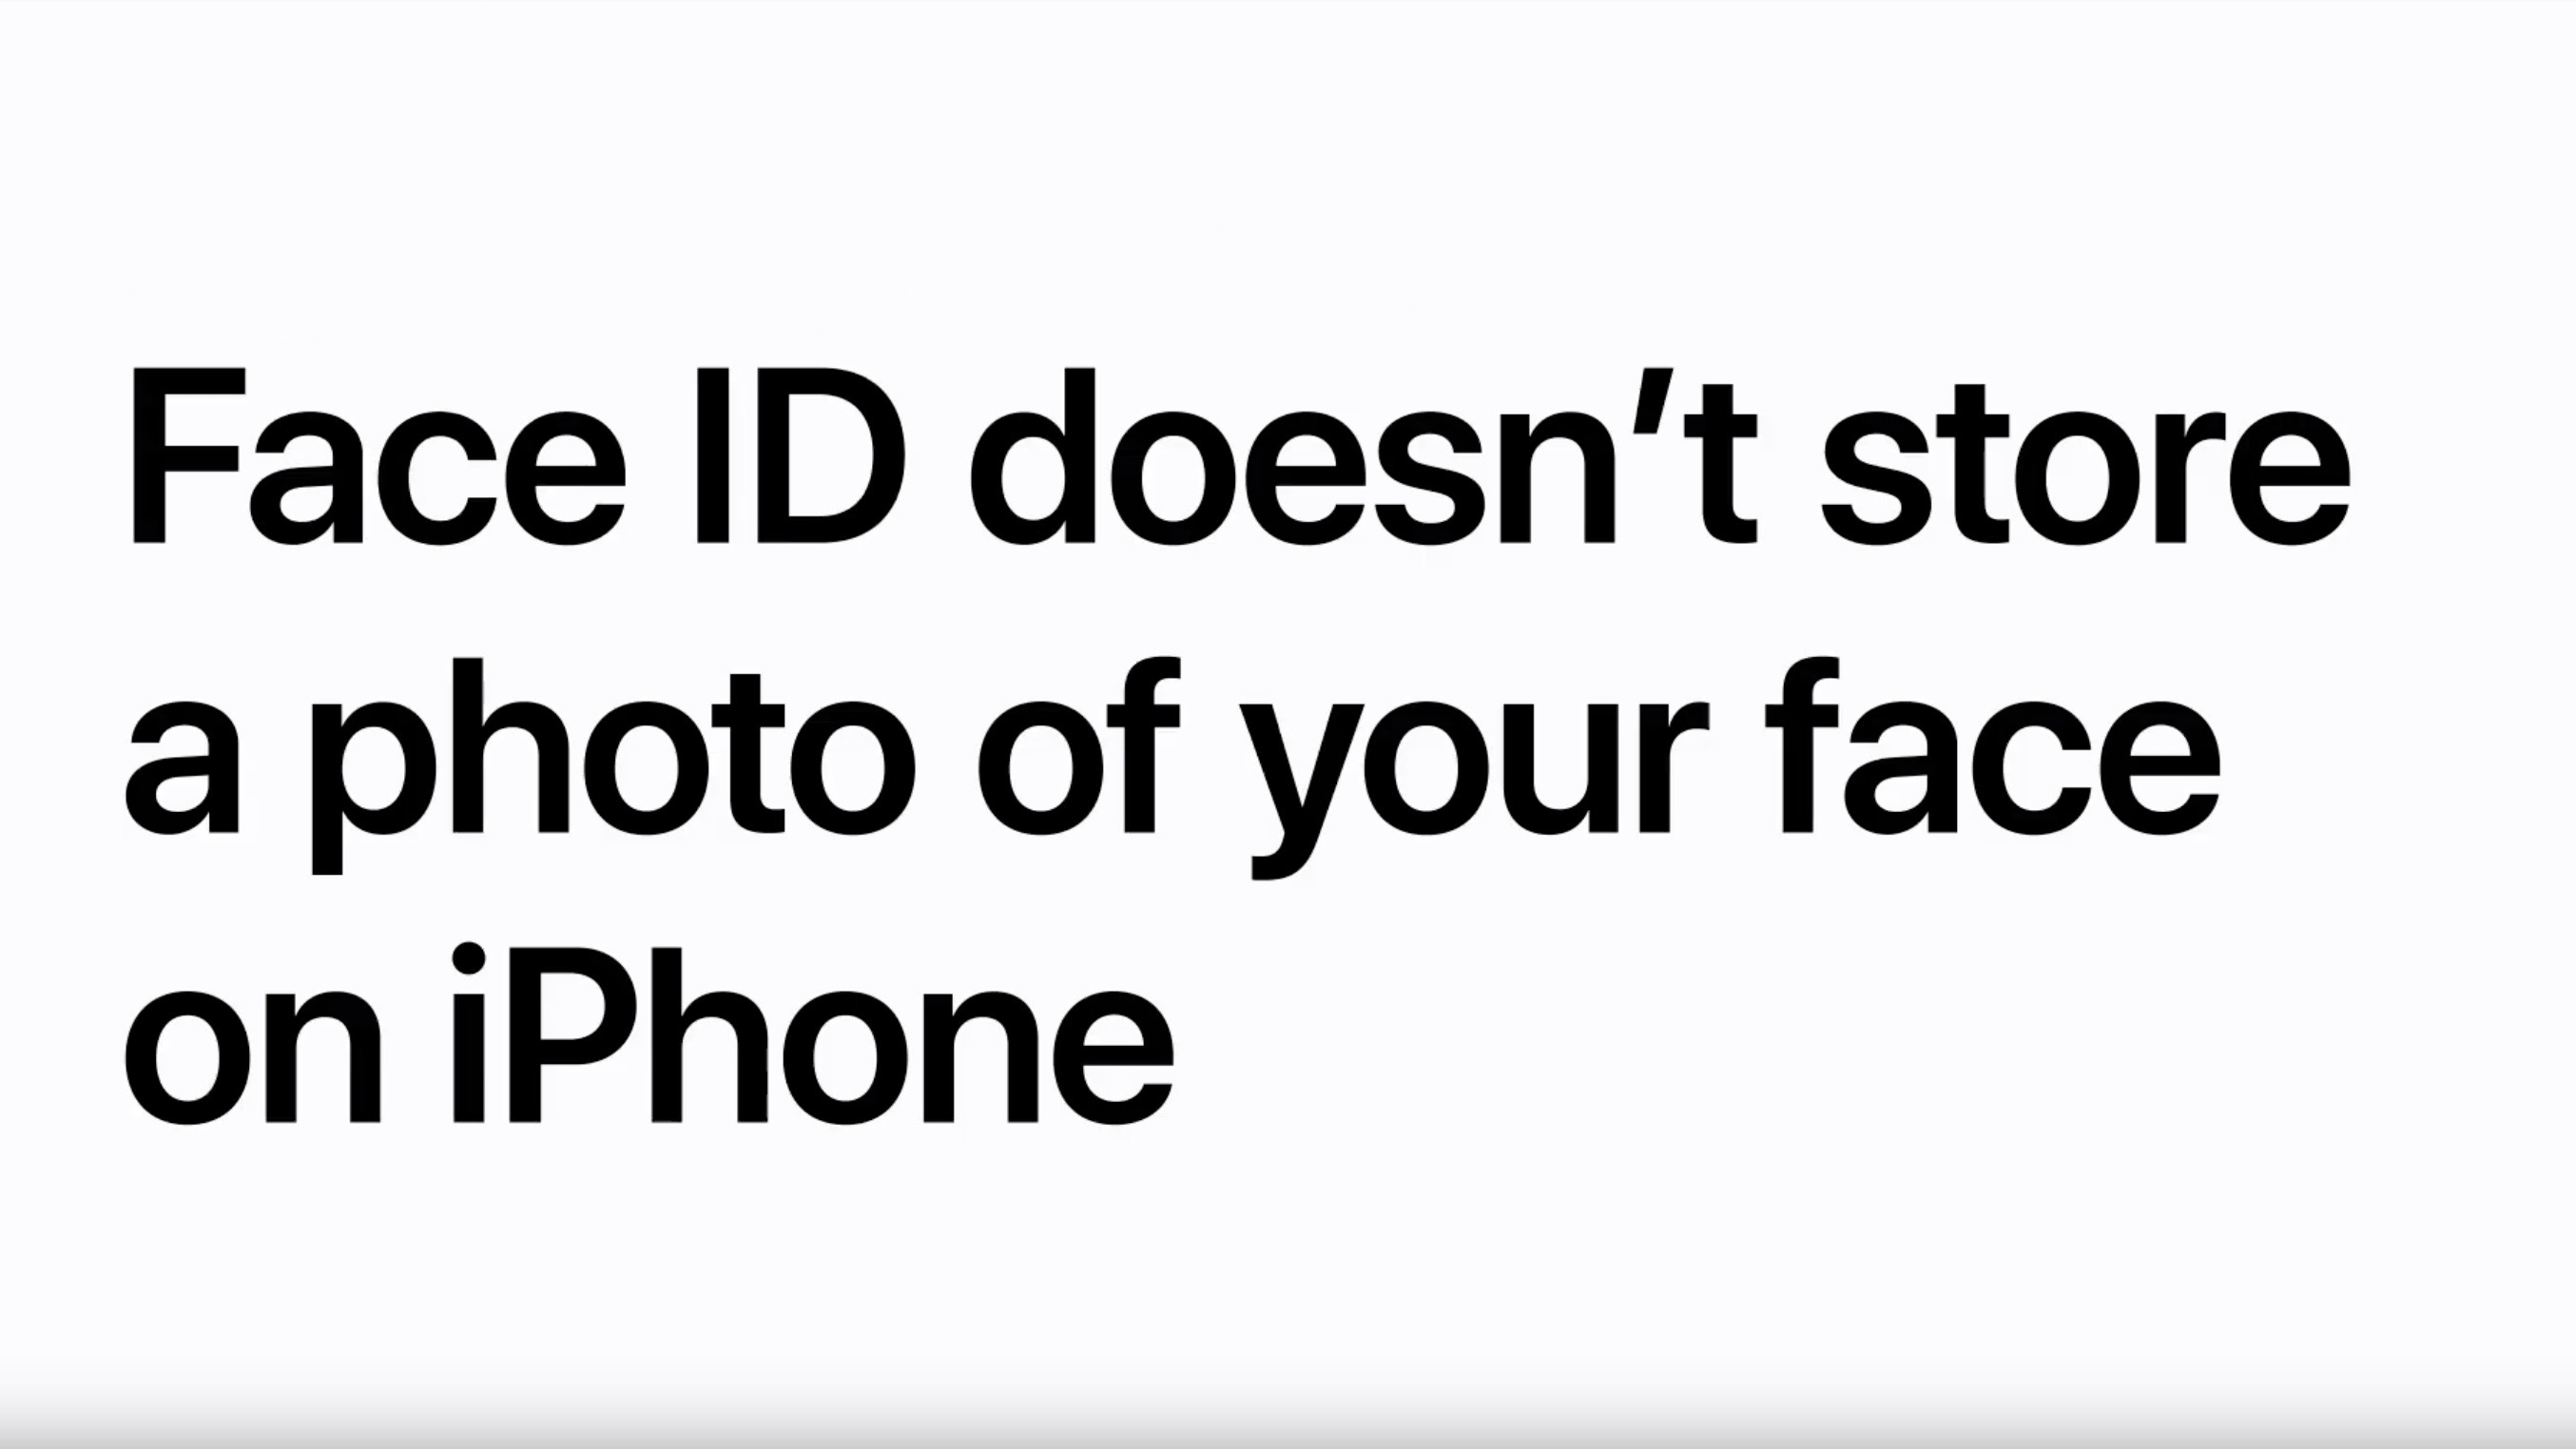 photo image Apple shares new 'There's more to iPhone' videos highlighting iOS 12, Face ID, more